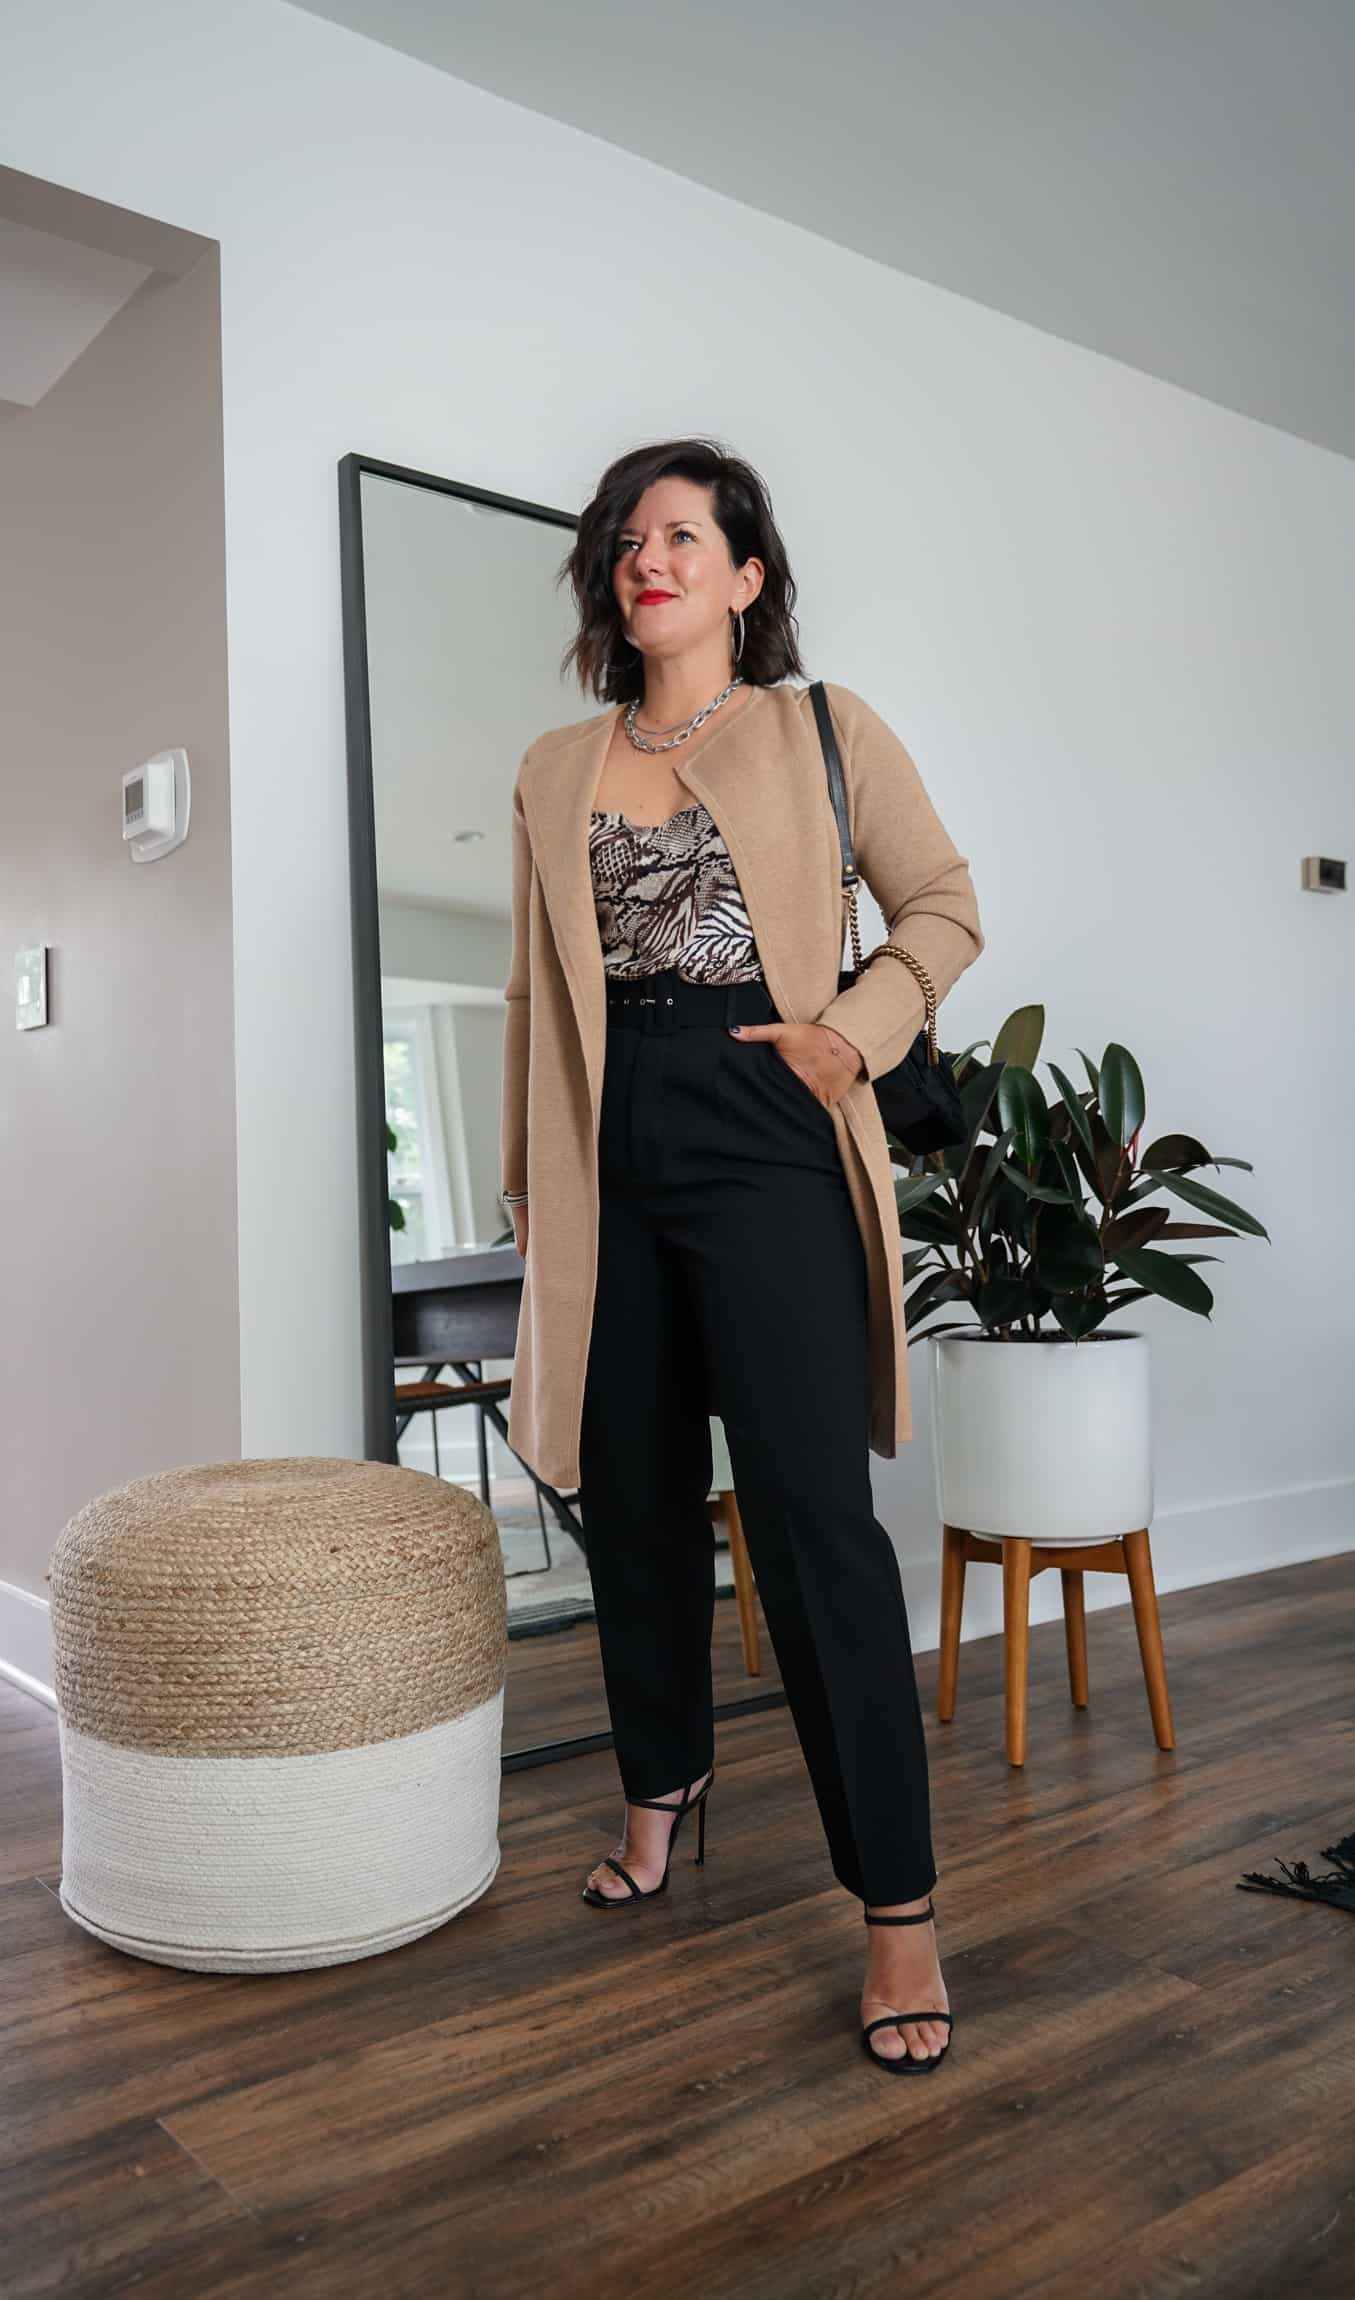 A Lily Love Affair shares how to wear a long cardigan with silk cami and black dress pants